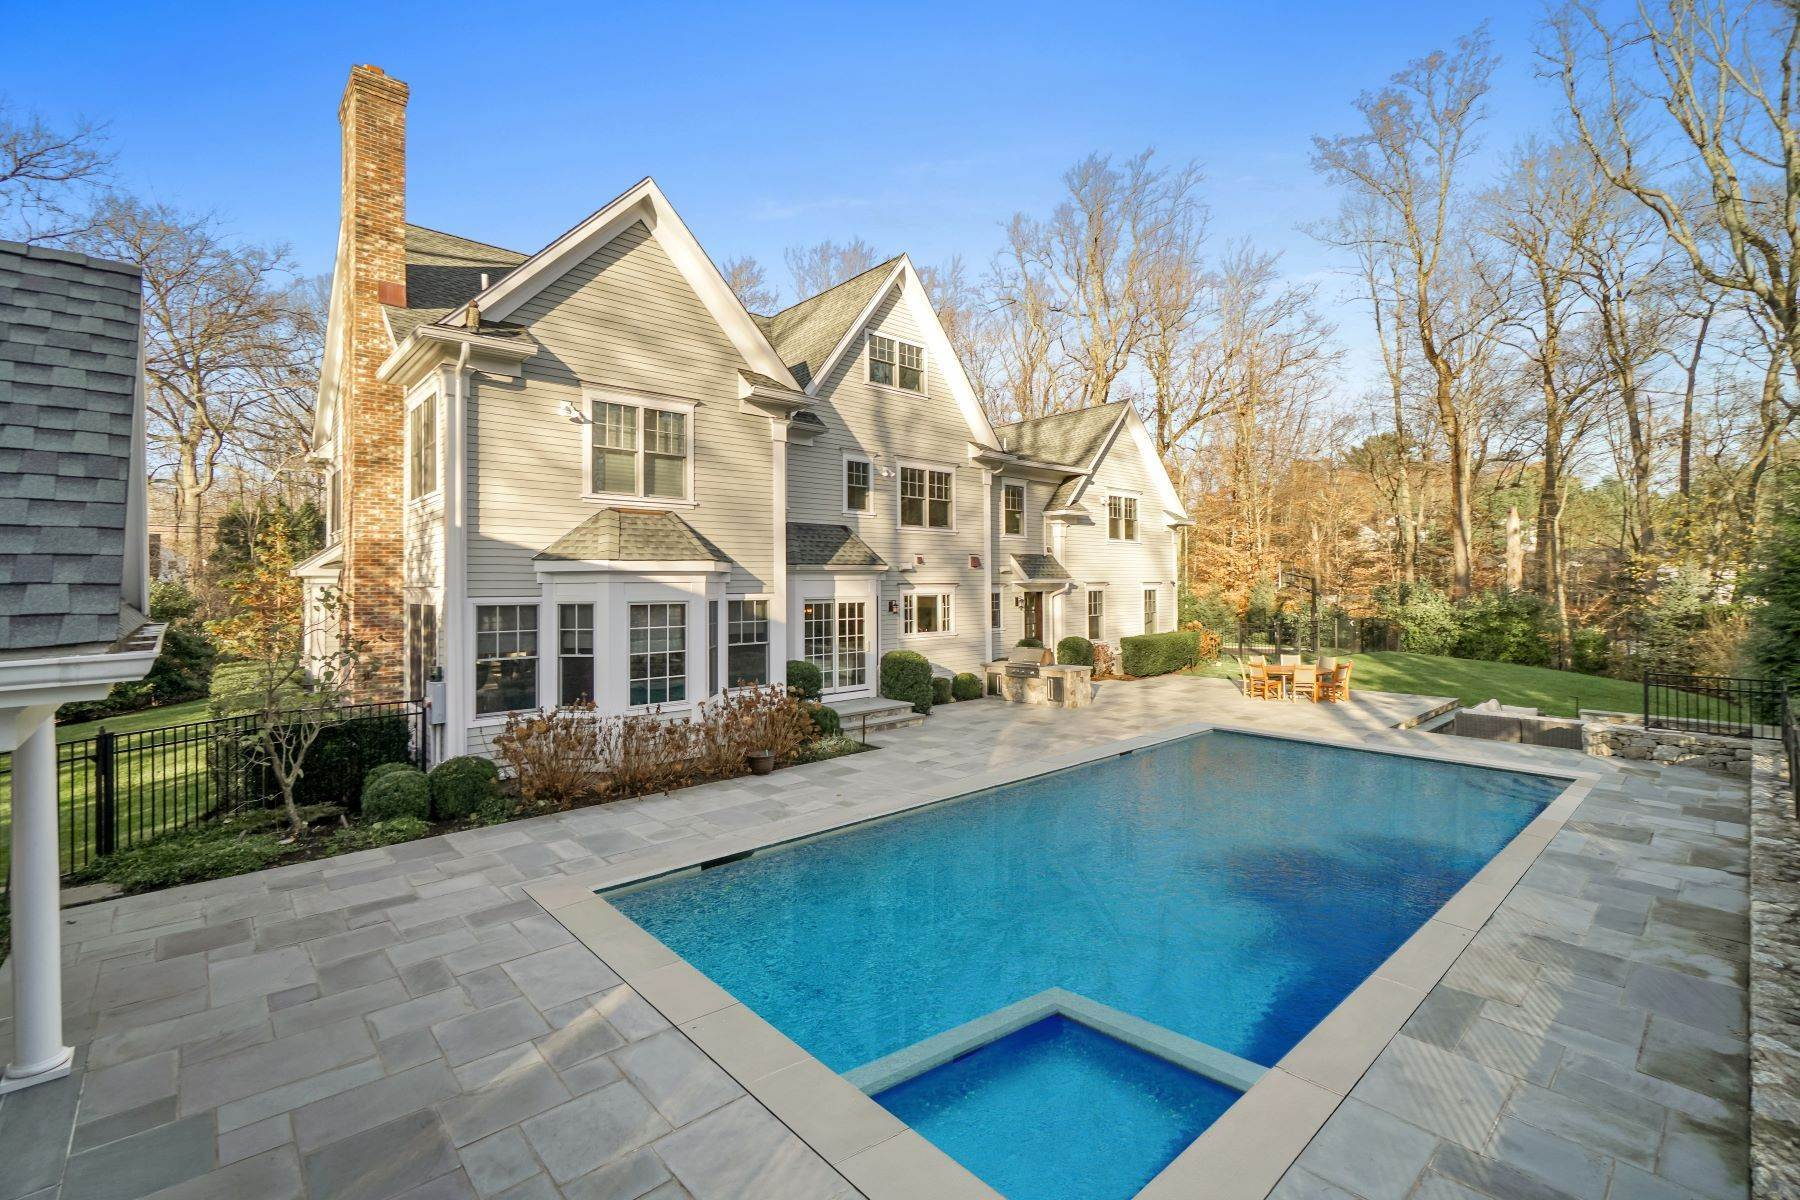 Single Family Homes for Sale at 1 Woods End Road Darien, Connecticut 06820 United States